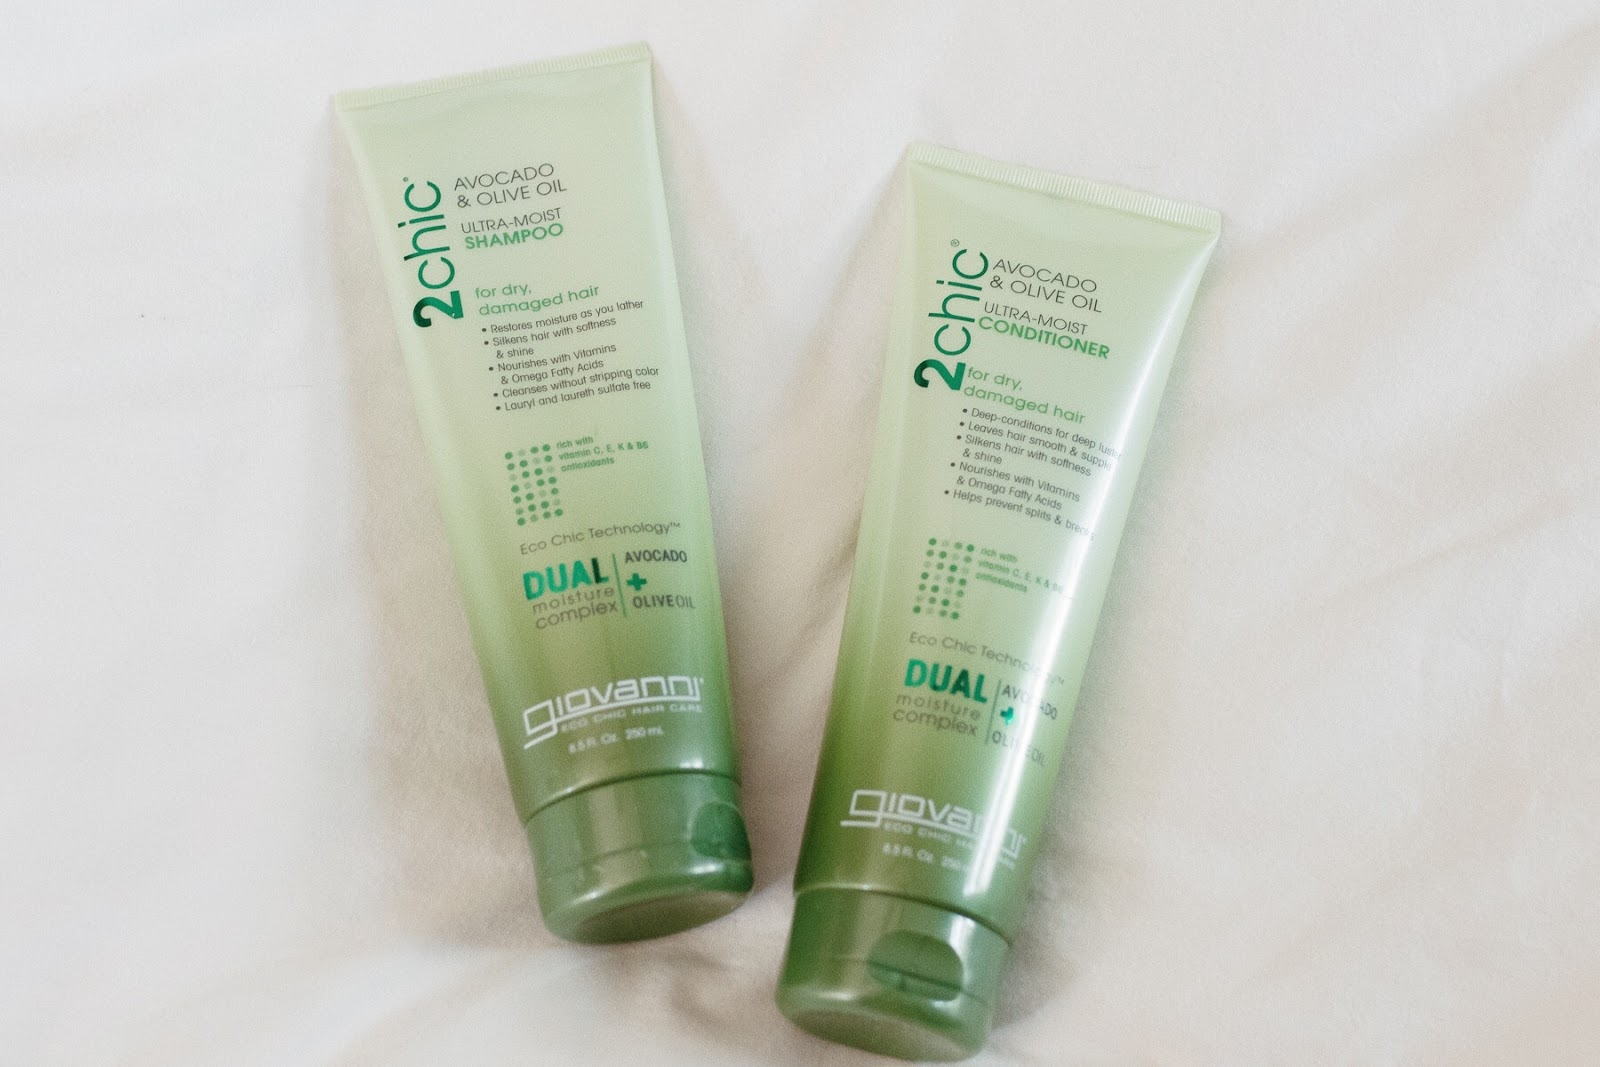 Giovanni 2chic moisturizing shampoo and conditioner with avocado and olive oil